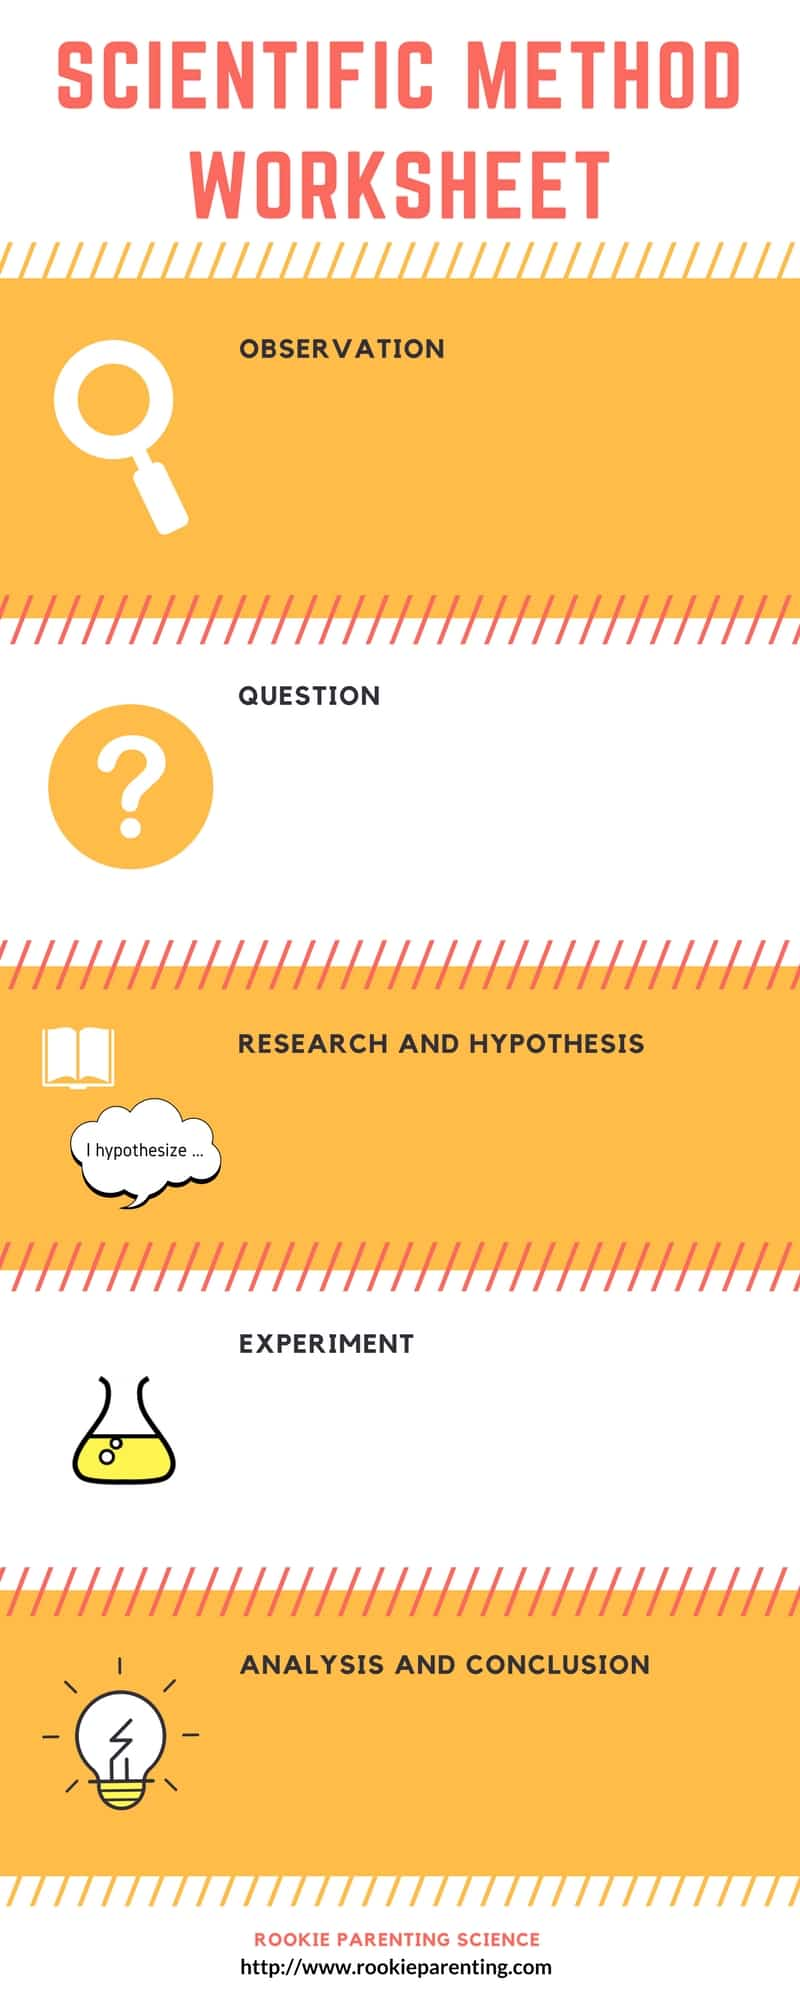 scientific method worksheet with 5 steps - observation, question, research and hypothesis, experiment and analysis and conclusion.